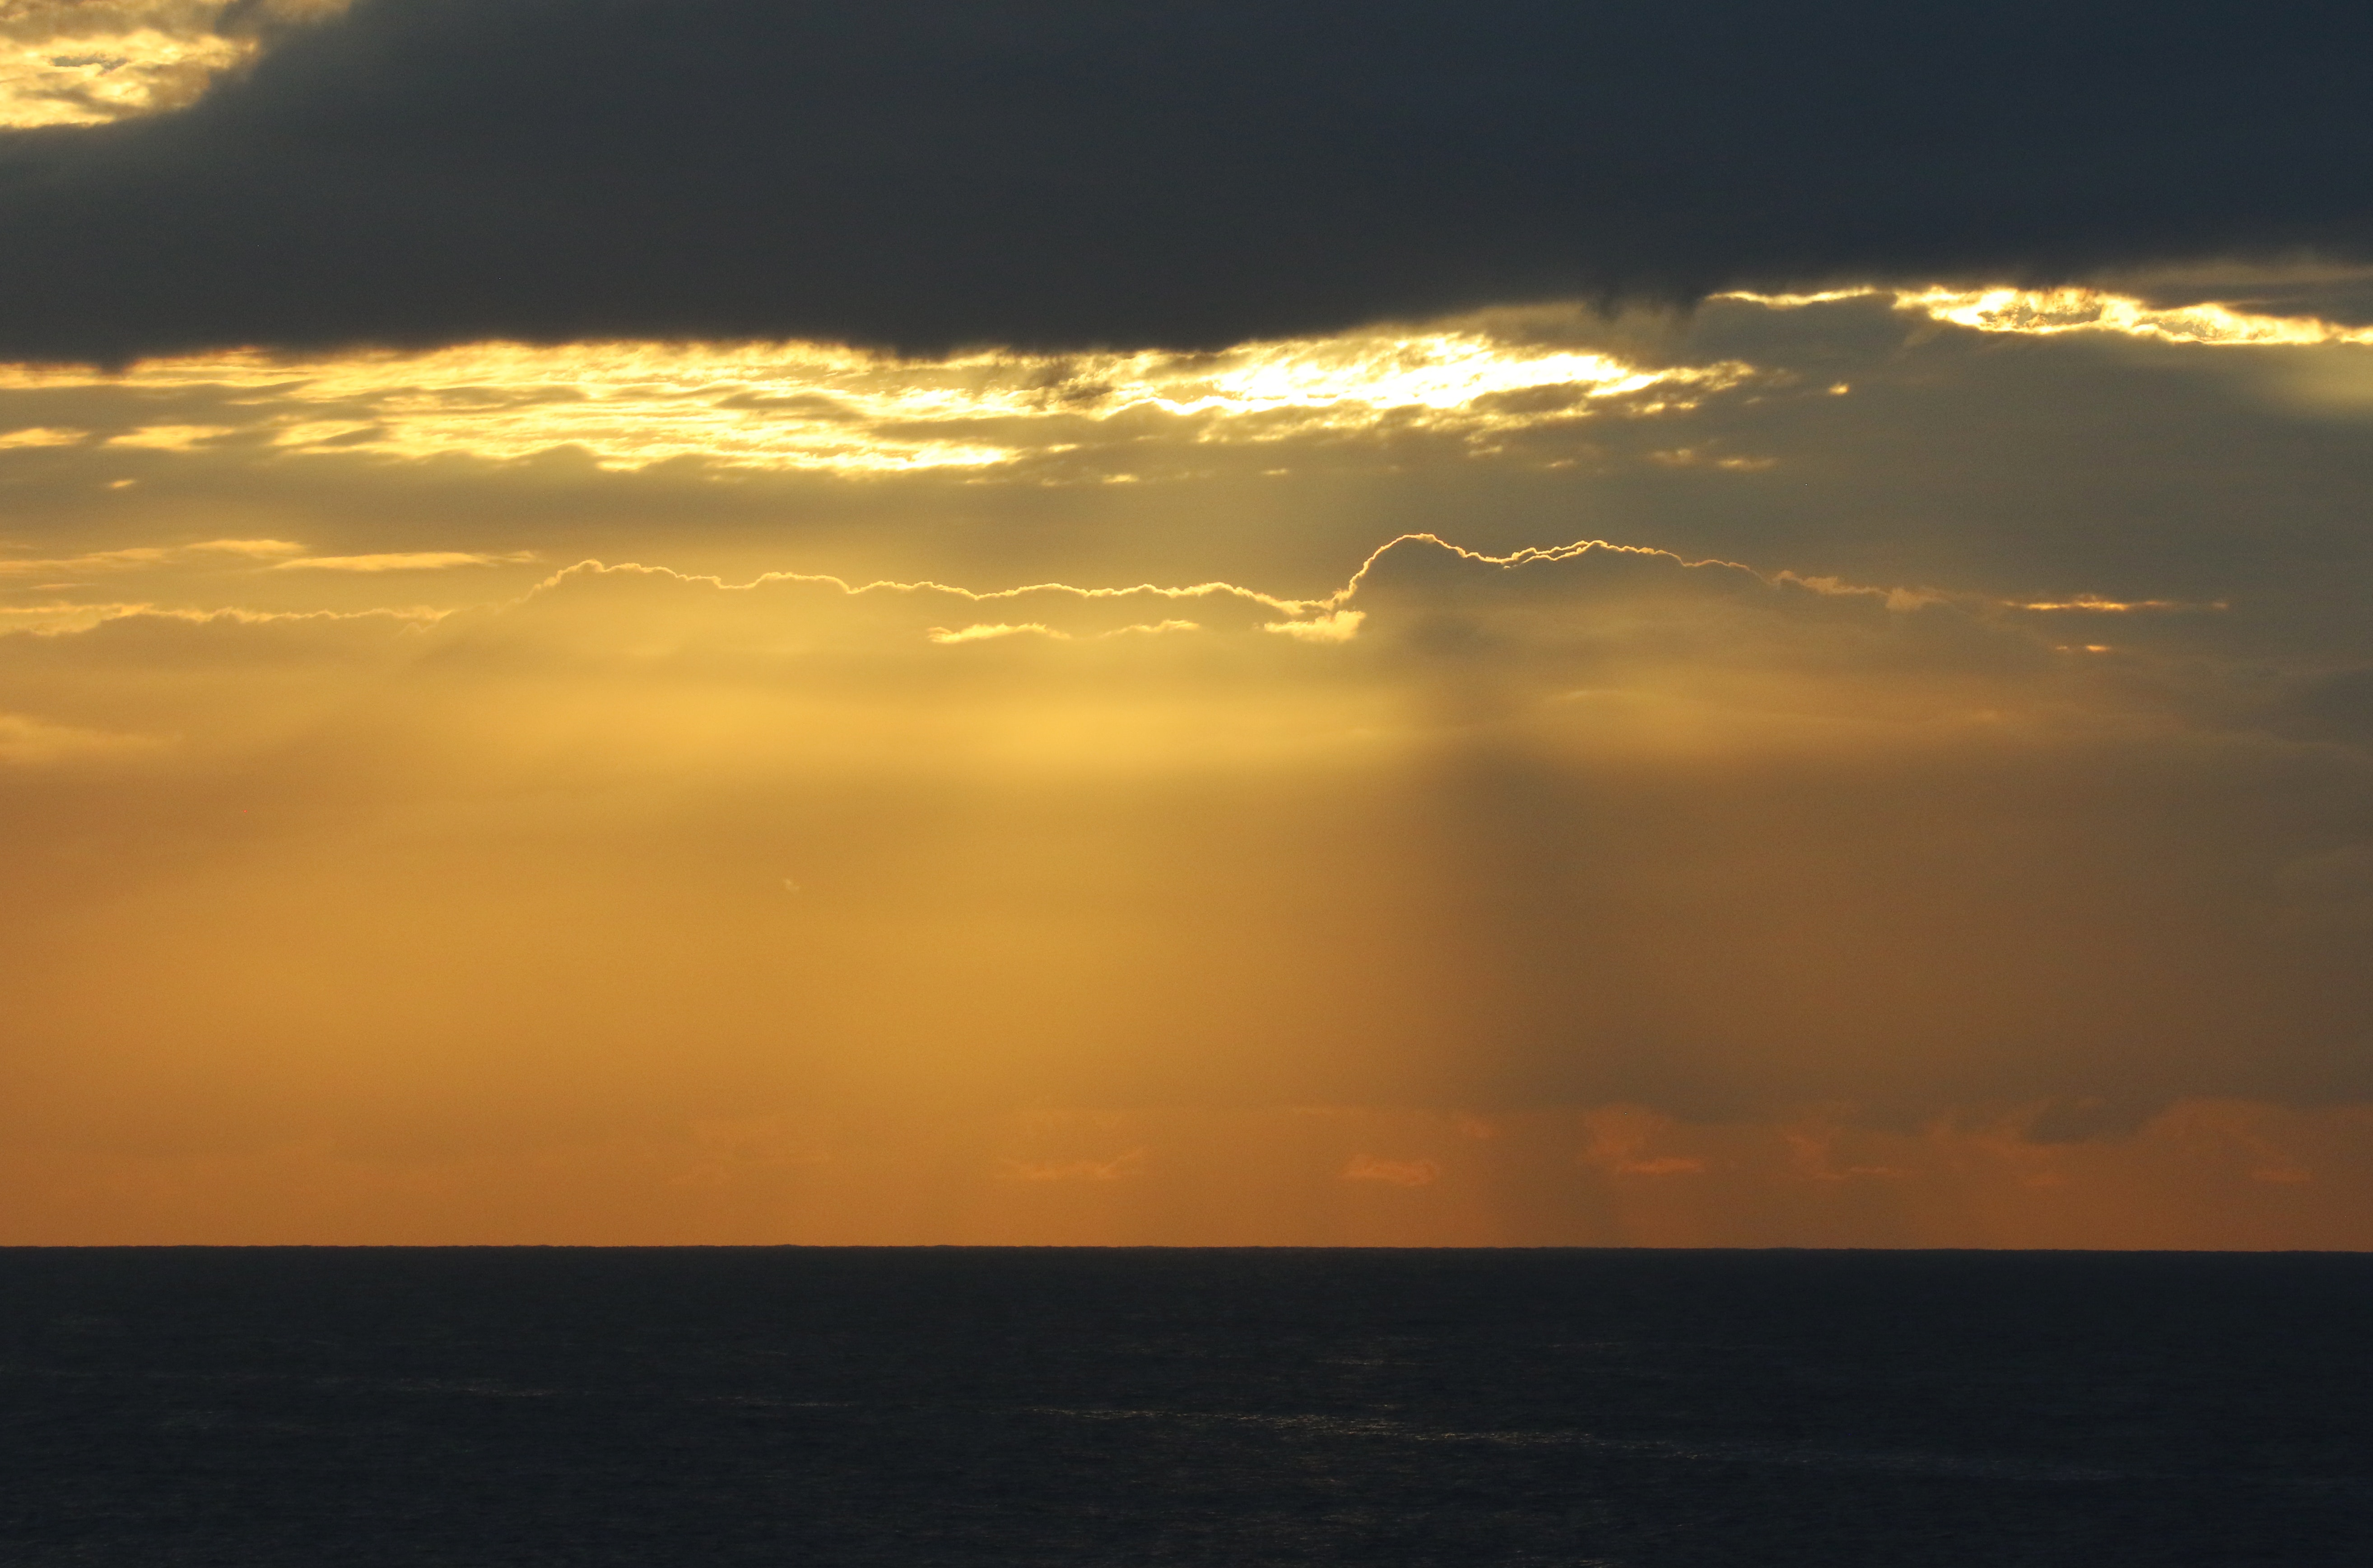 Panoramic Photography of Sunbeam, Clouds, Sea, Water, Travel, HQ Photo